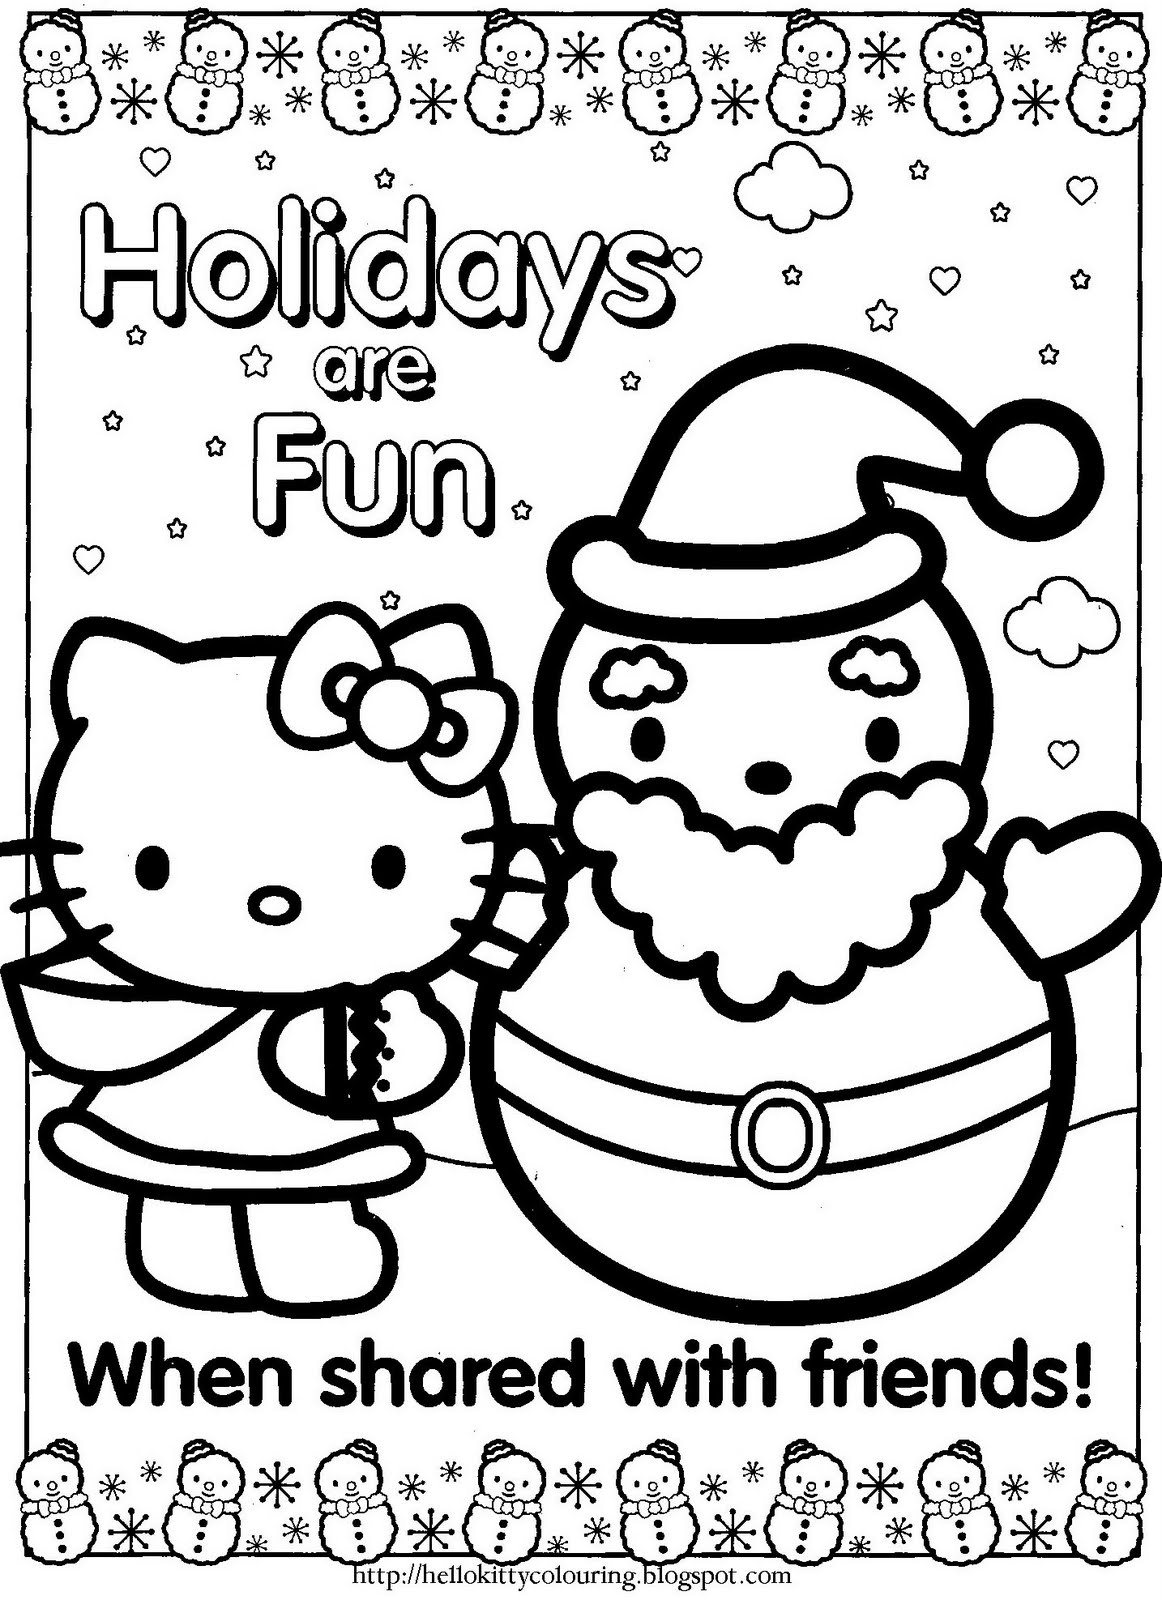 - Crayola Christmas Coloring Pages